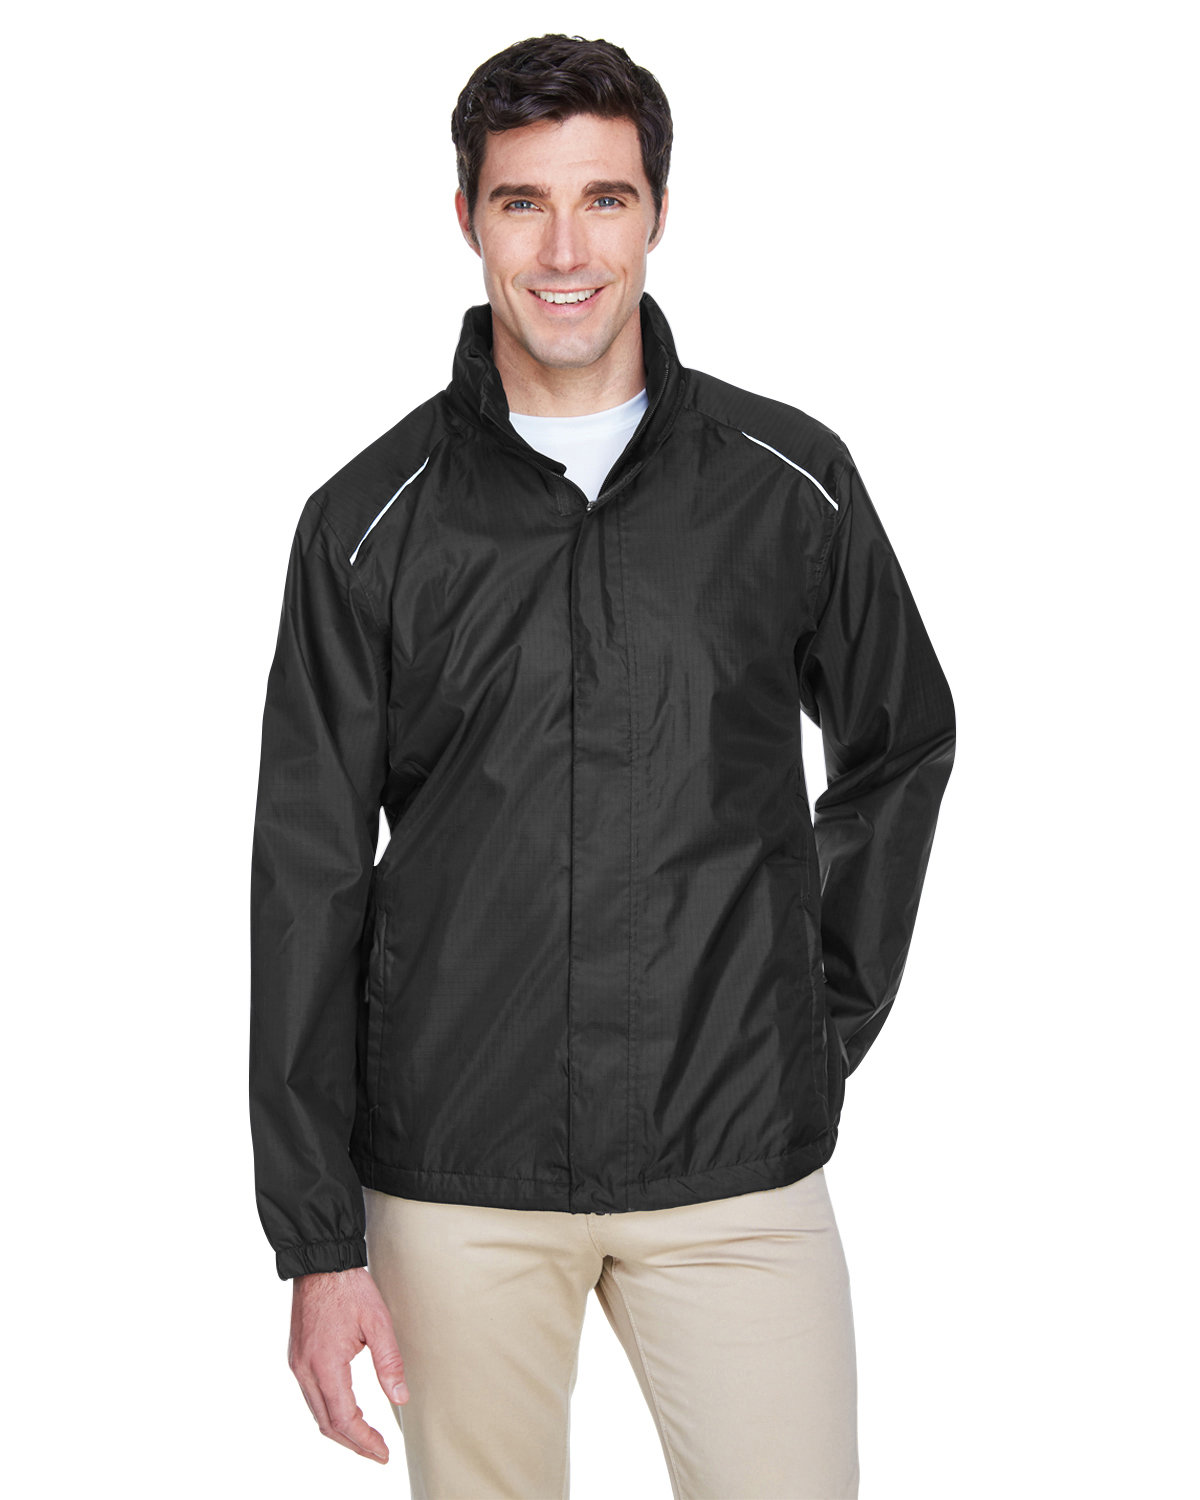 Core 365 Men's Climate Seam-Sealed Lightweight Variegated Ripstop Jacket BLACK